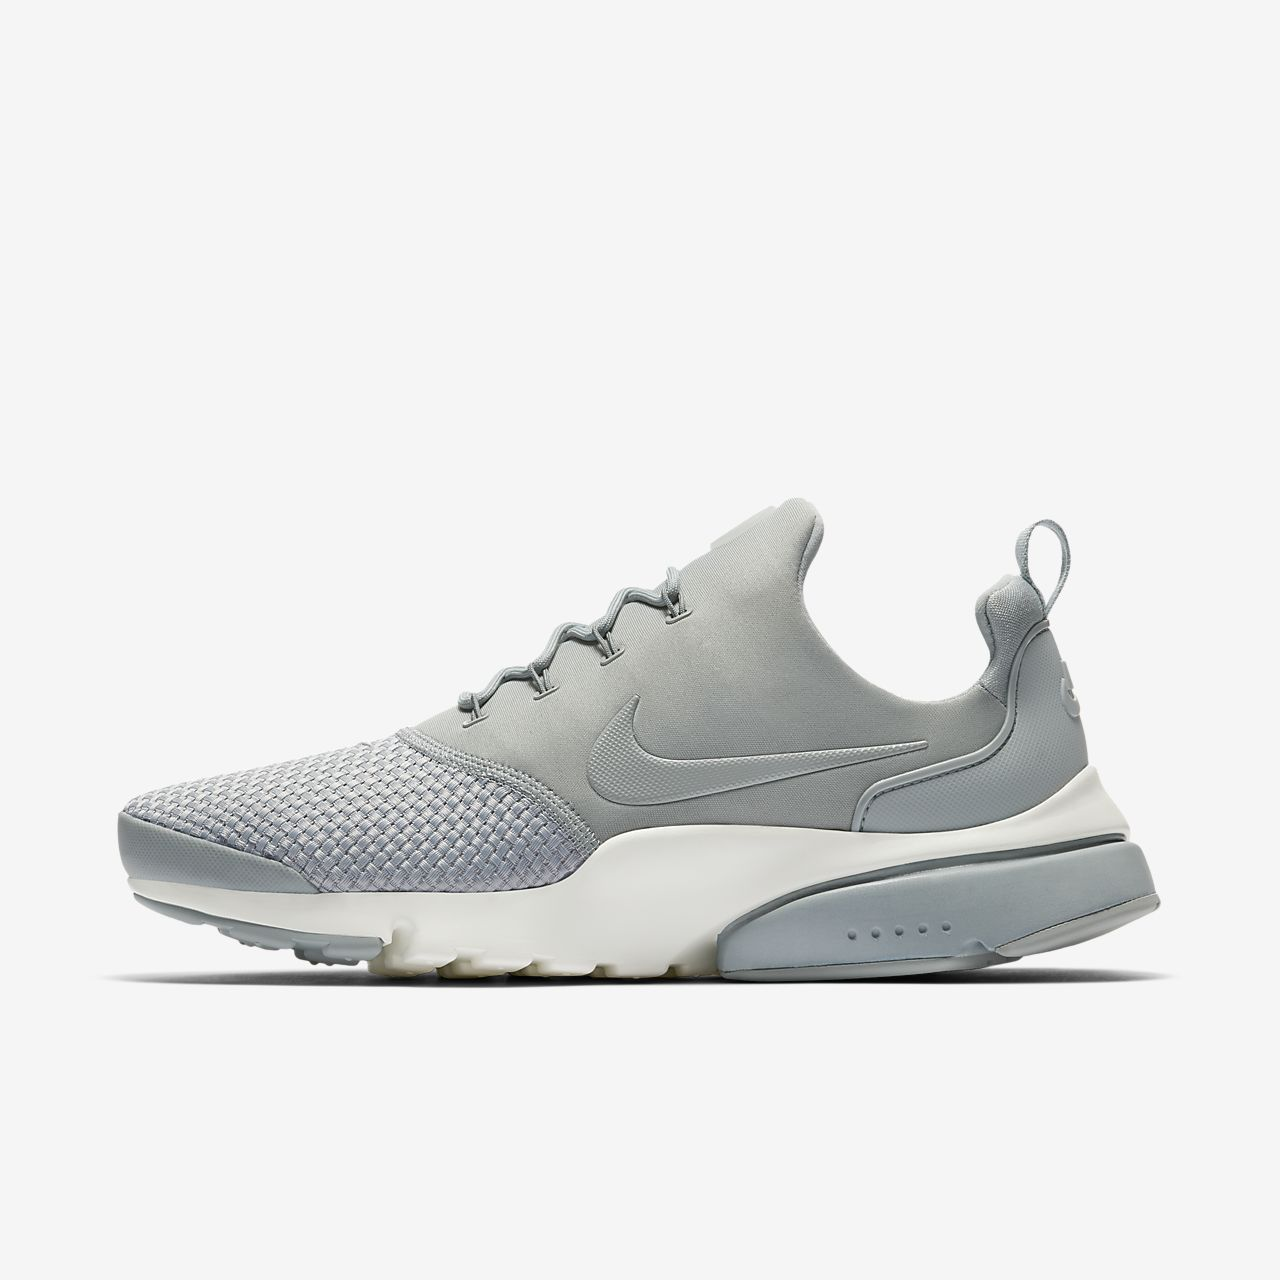 nike presto fly for men